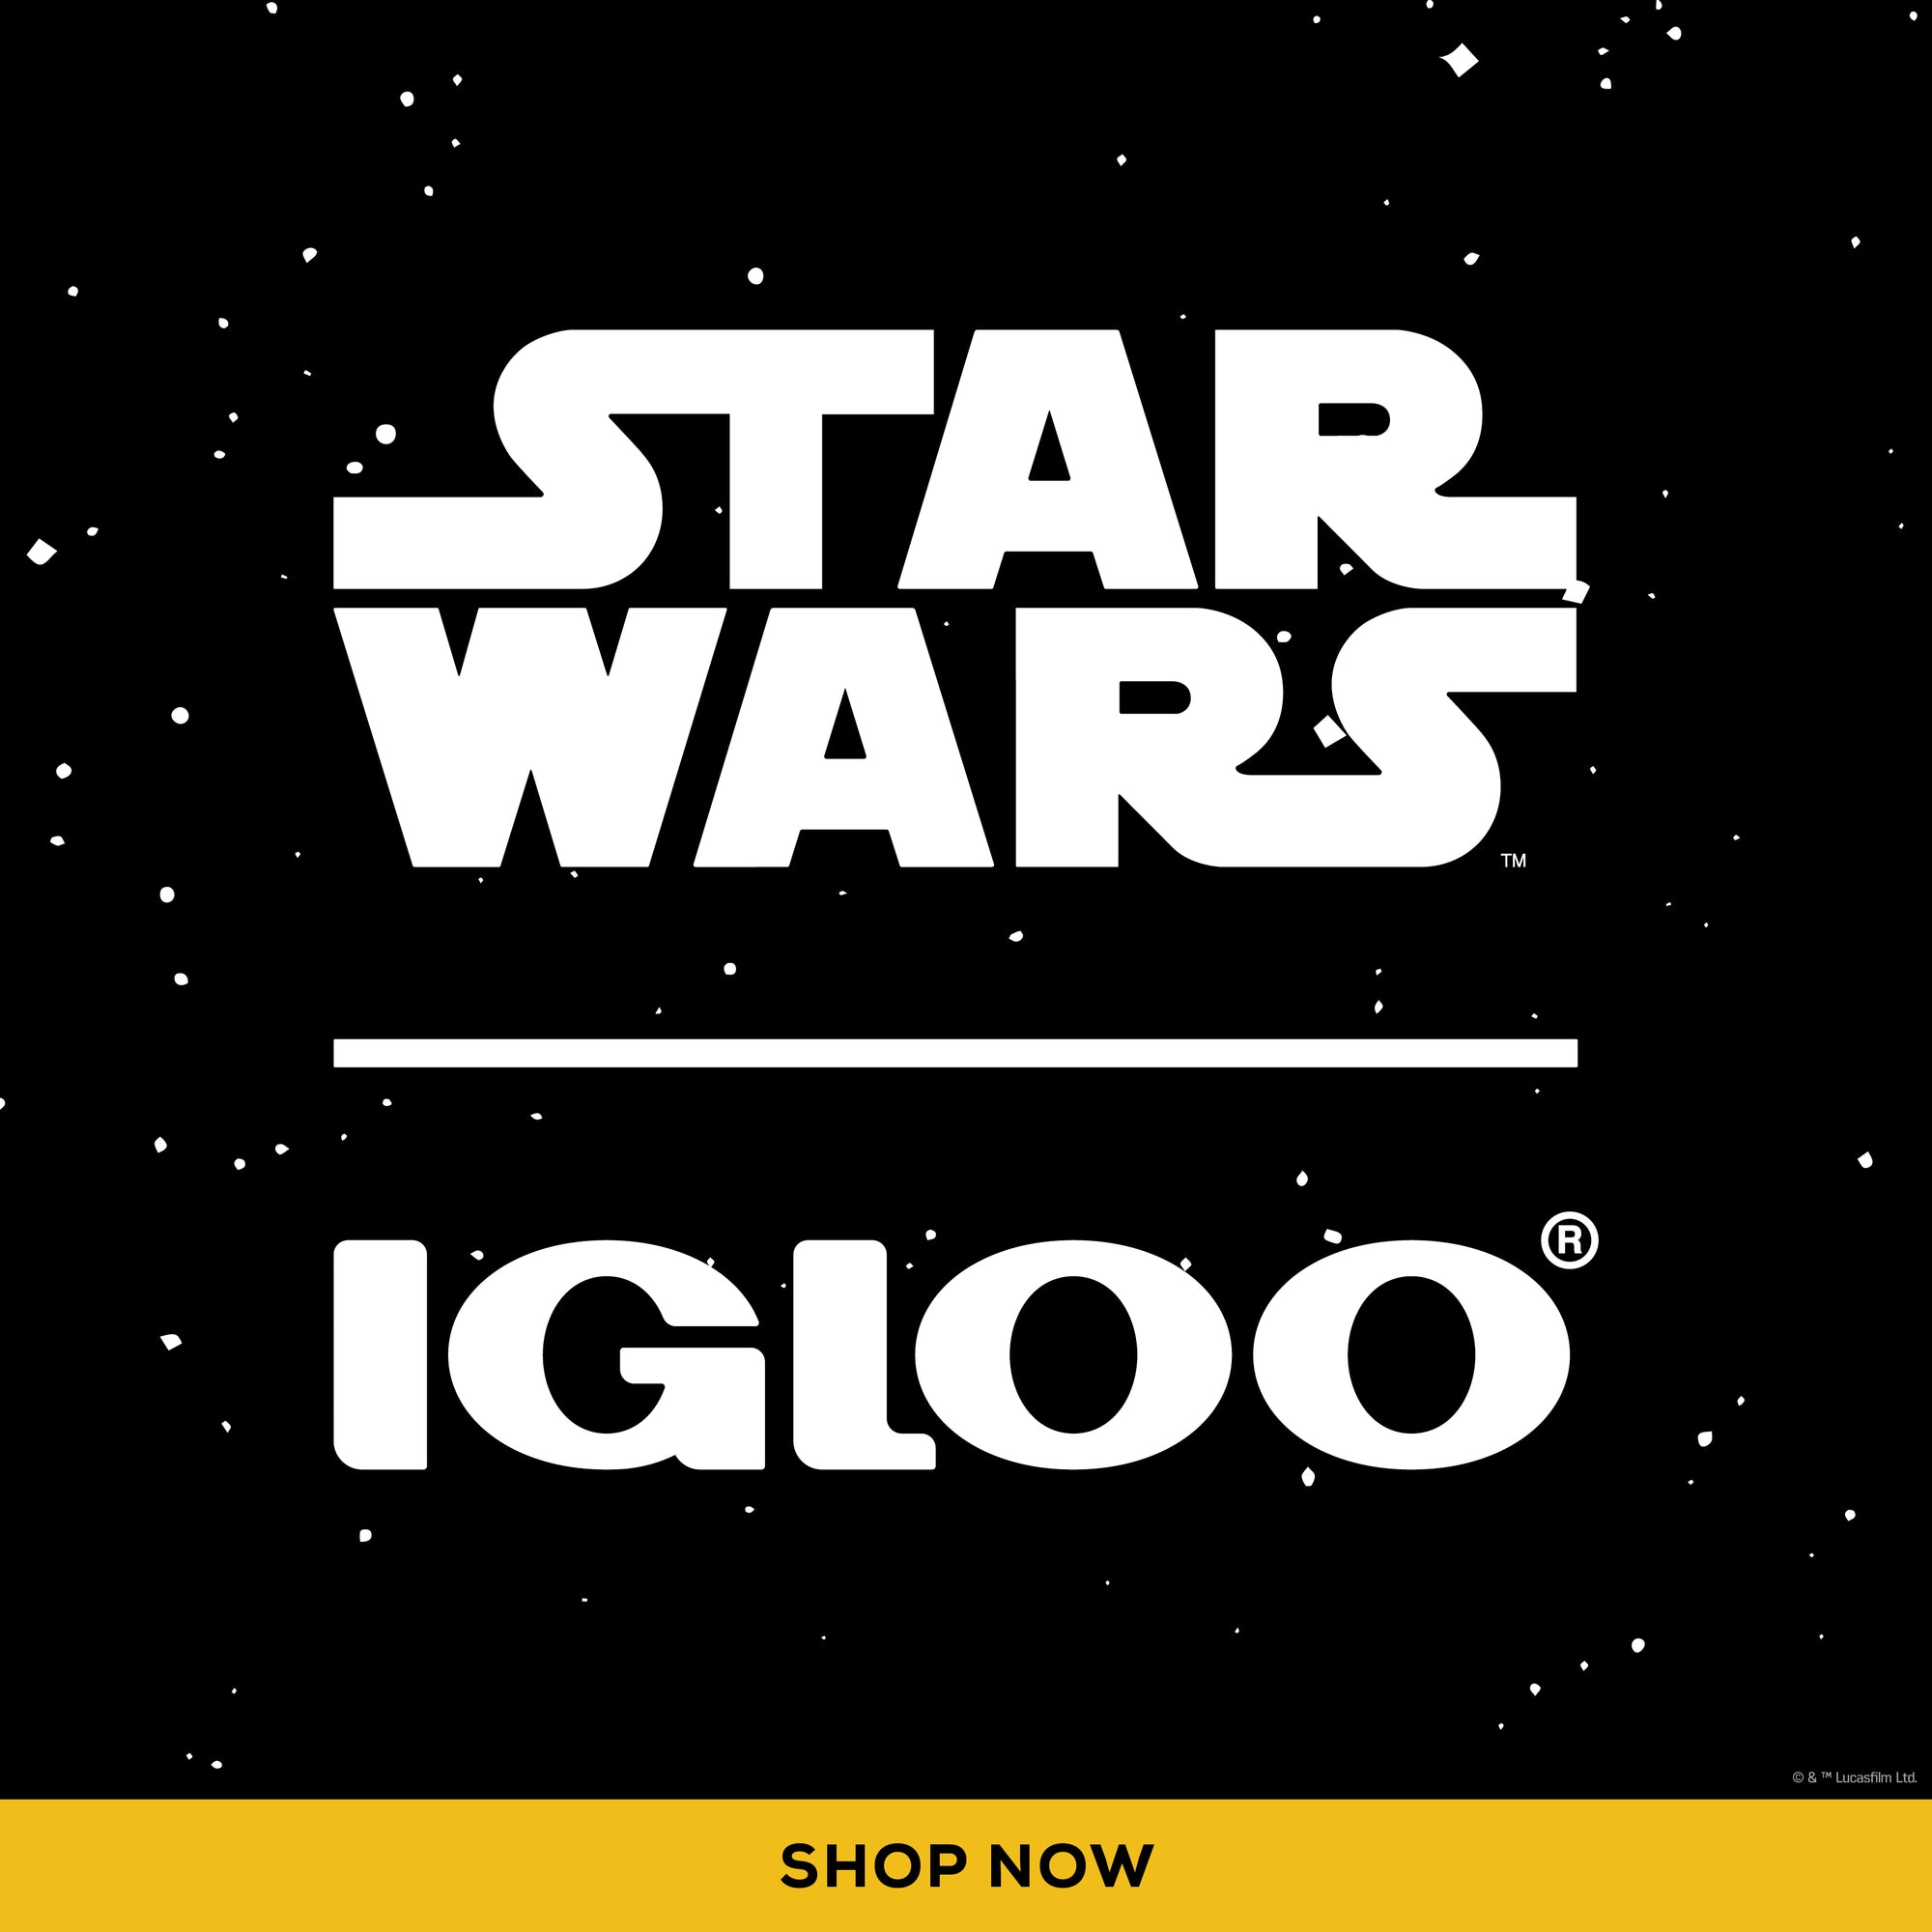 Igloo and Star Wars